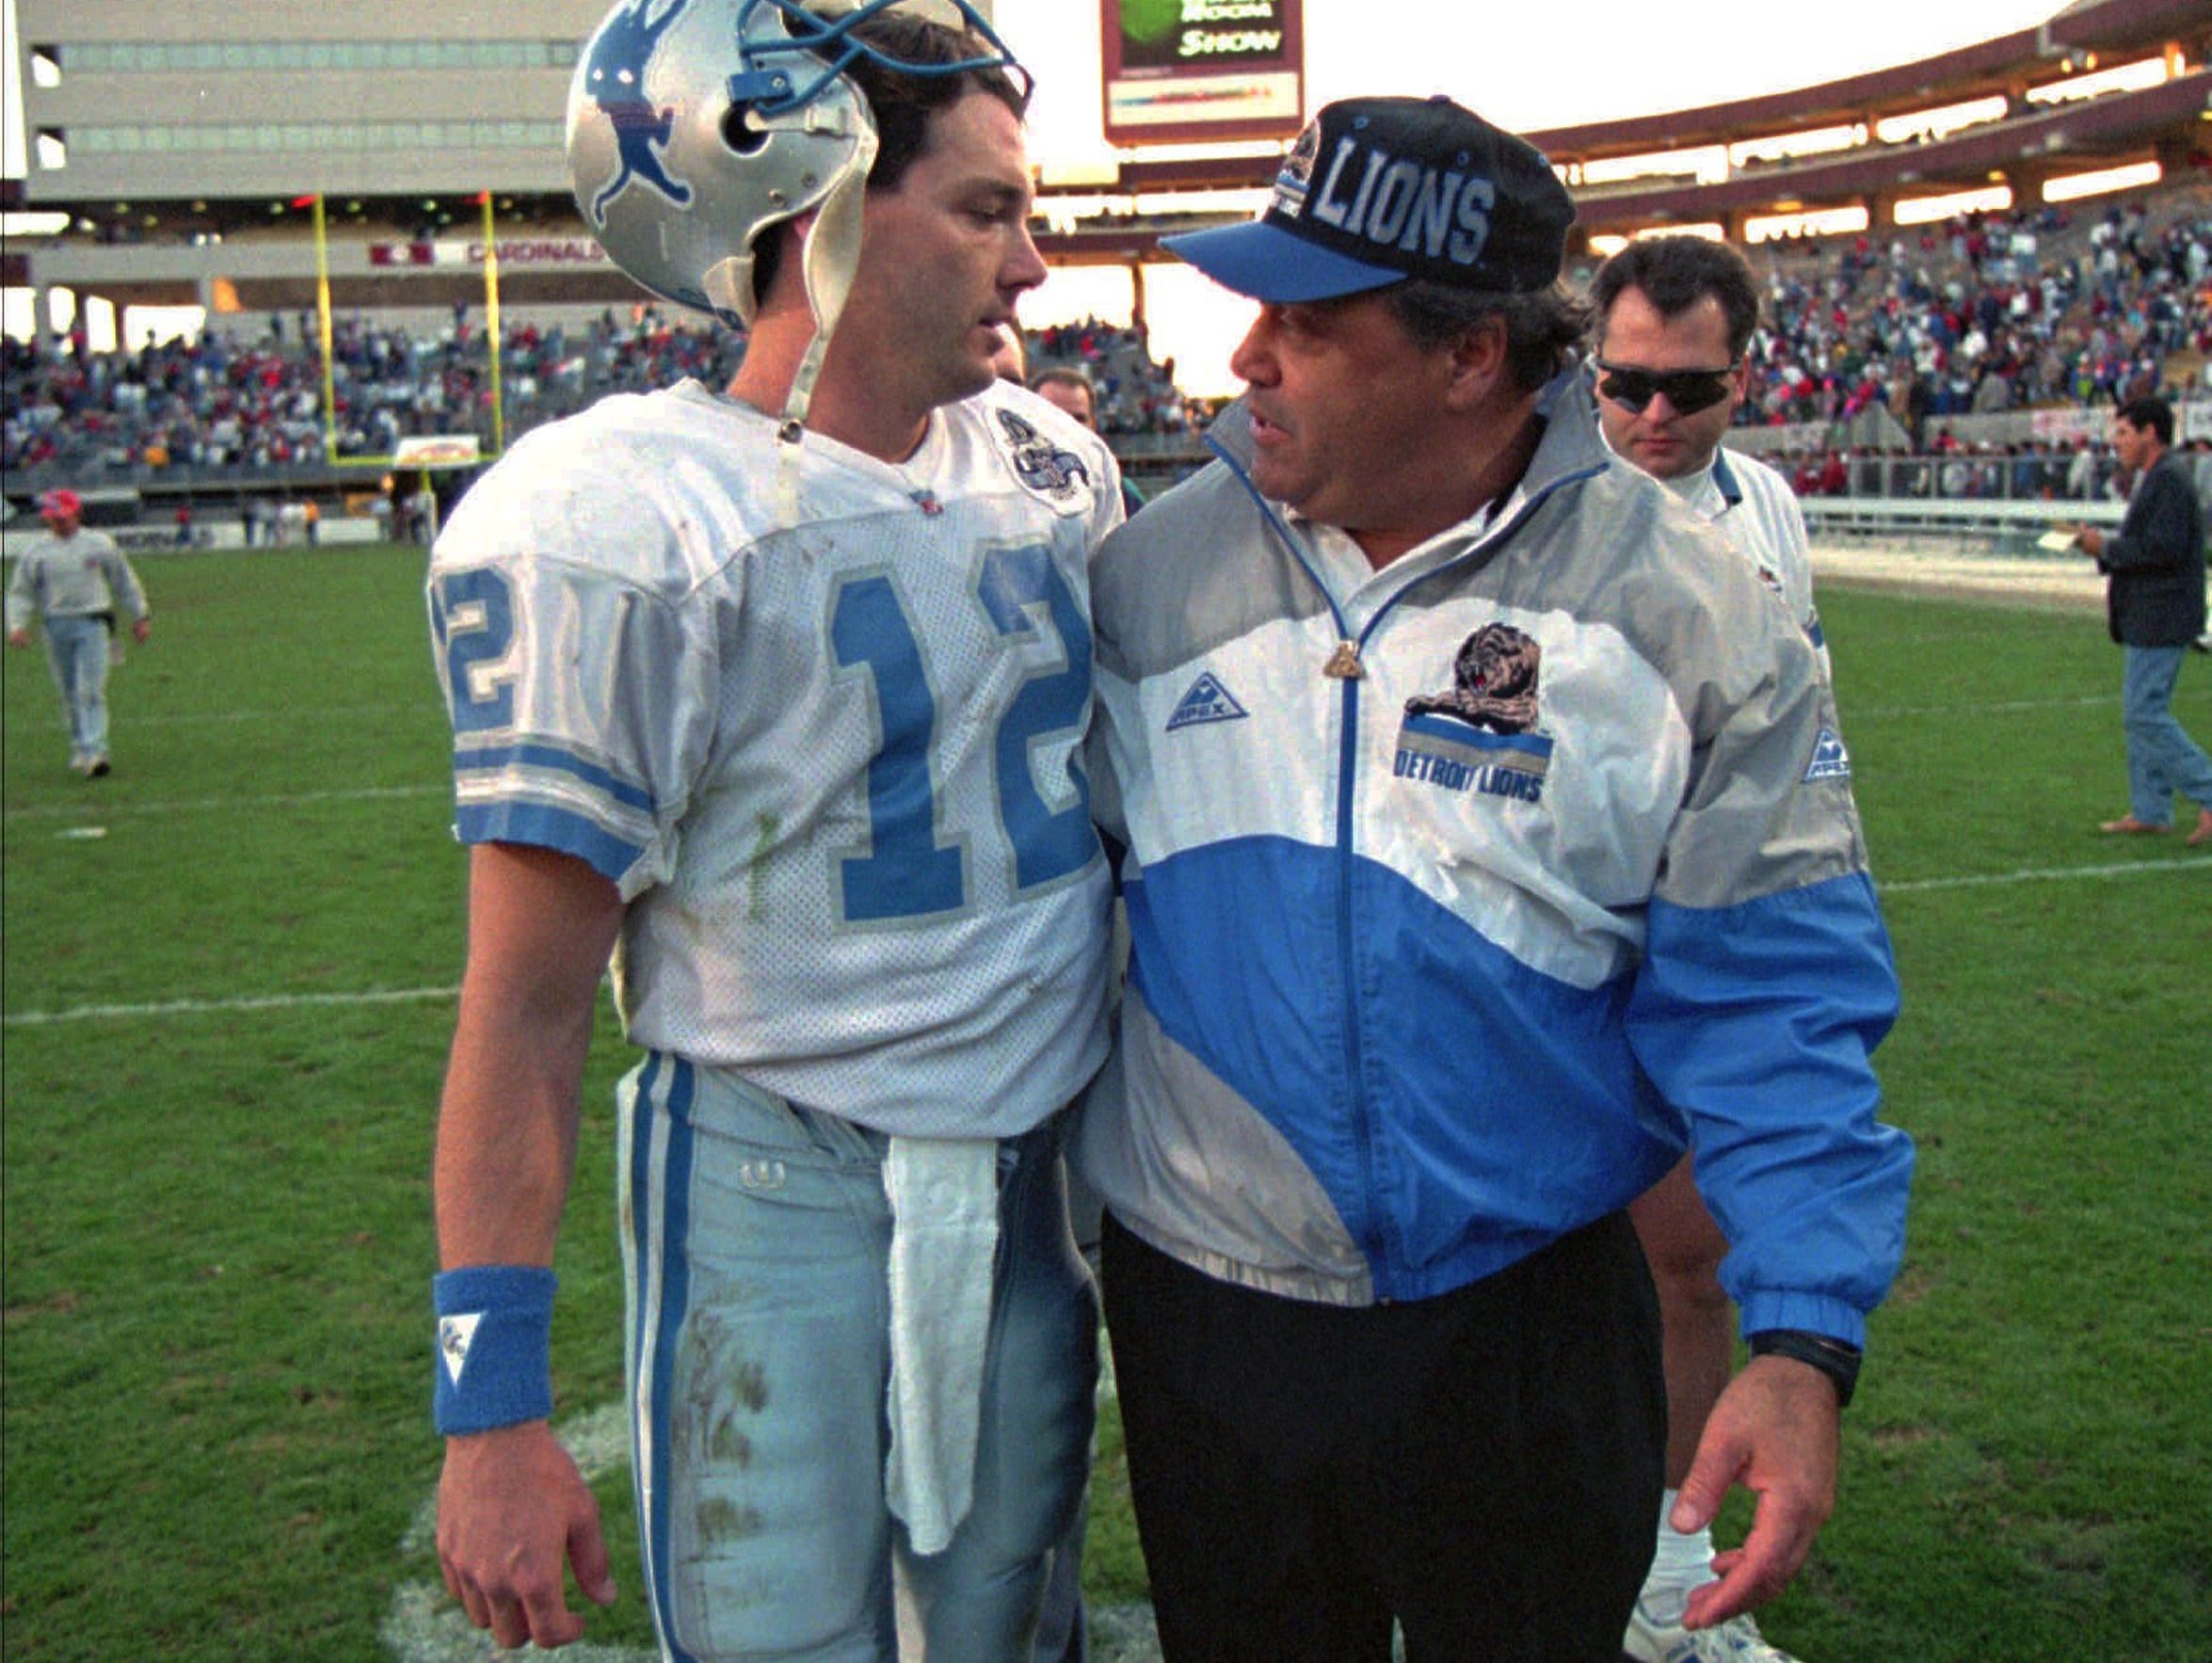 In a Detroit Free Press file photo, Lions' coach Wayne